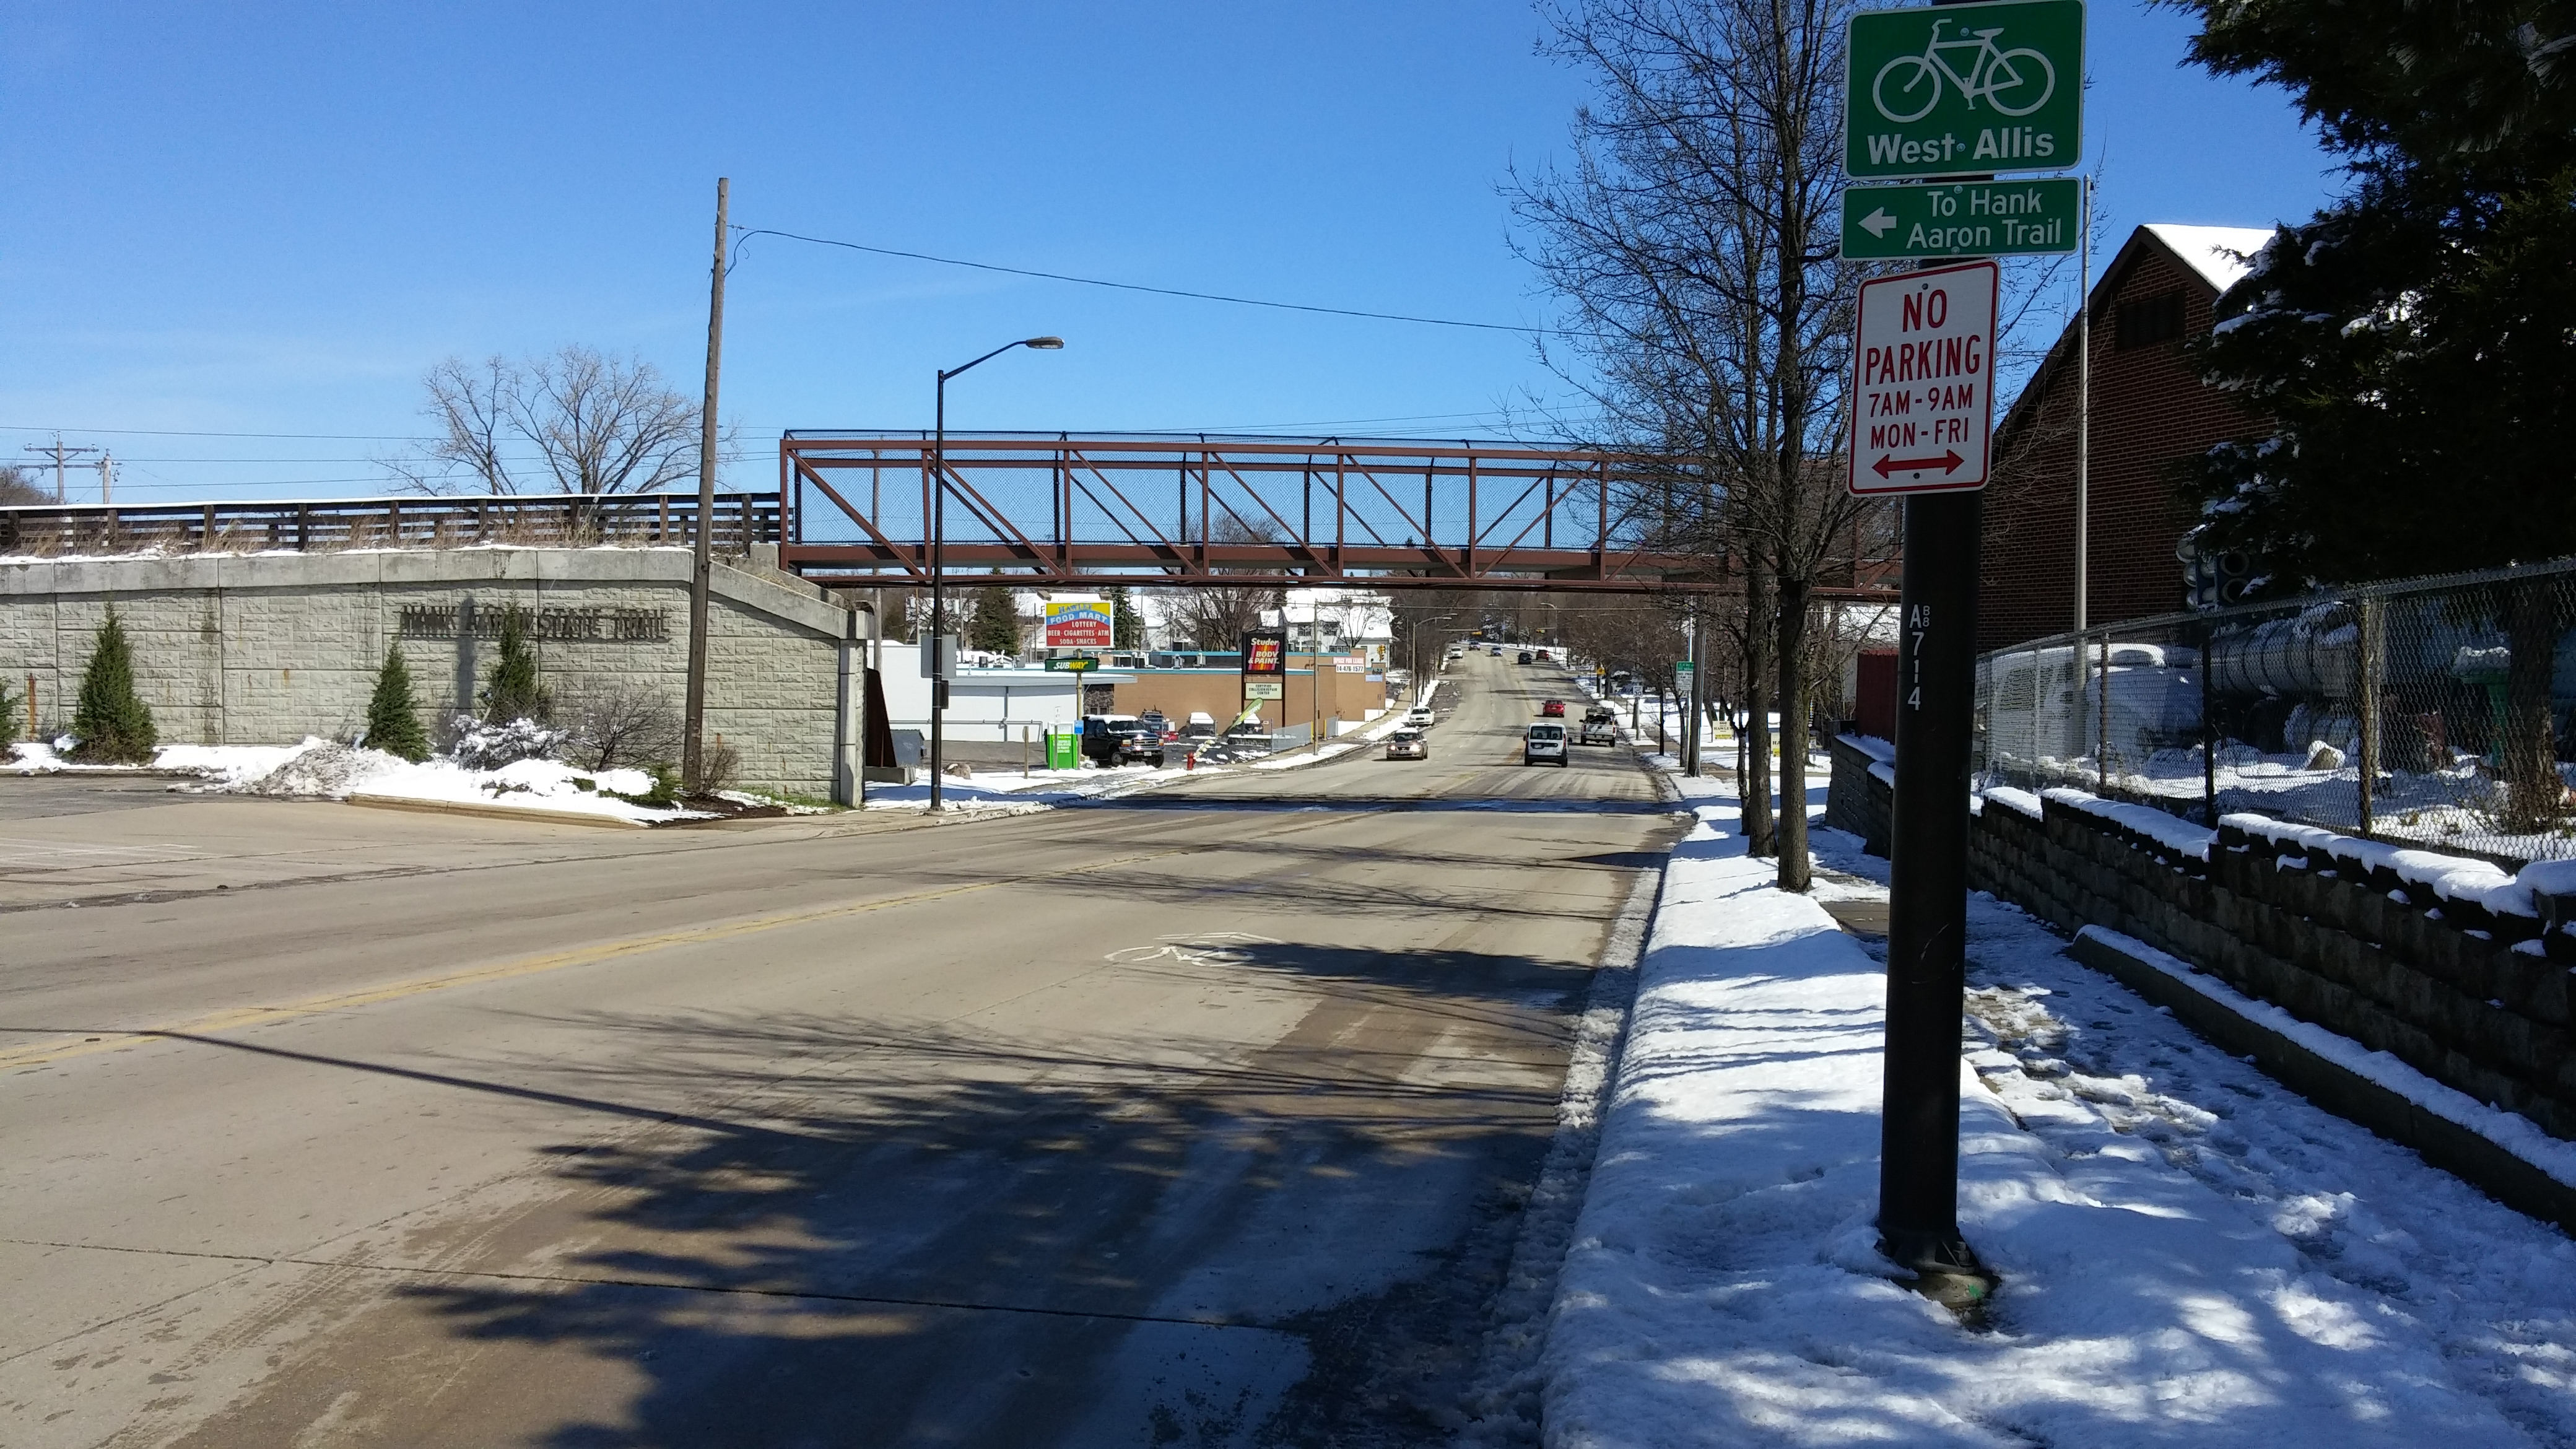 The south end of Hawley Road begins at the Hank Aaron State Trail and S. 60th Street. Photo taken April 15th, 2019 by Carl Baehr.